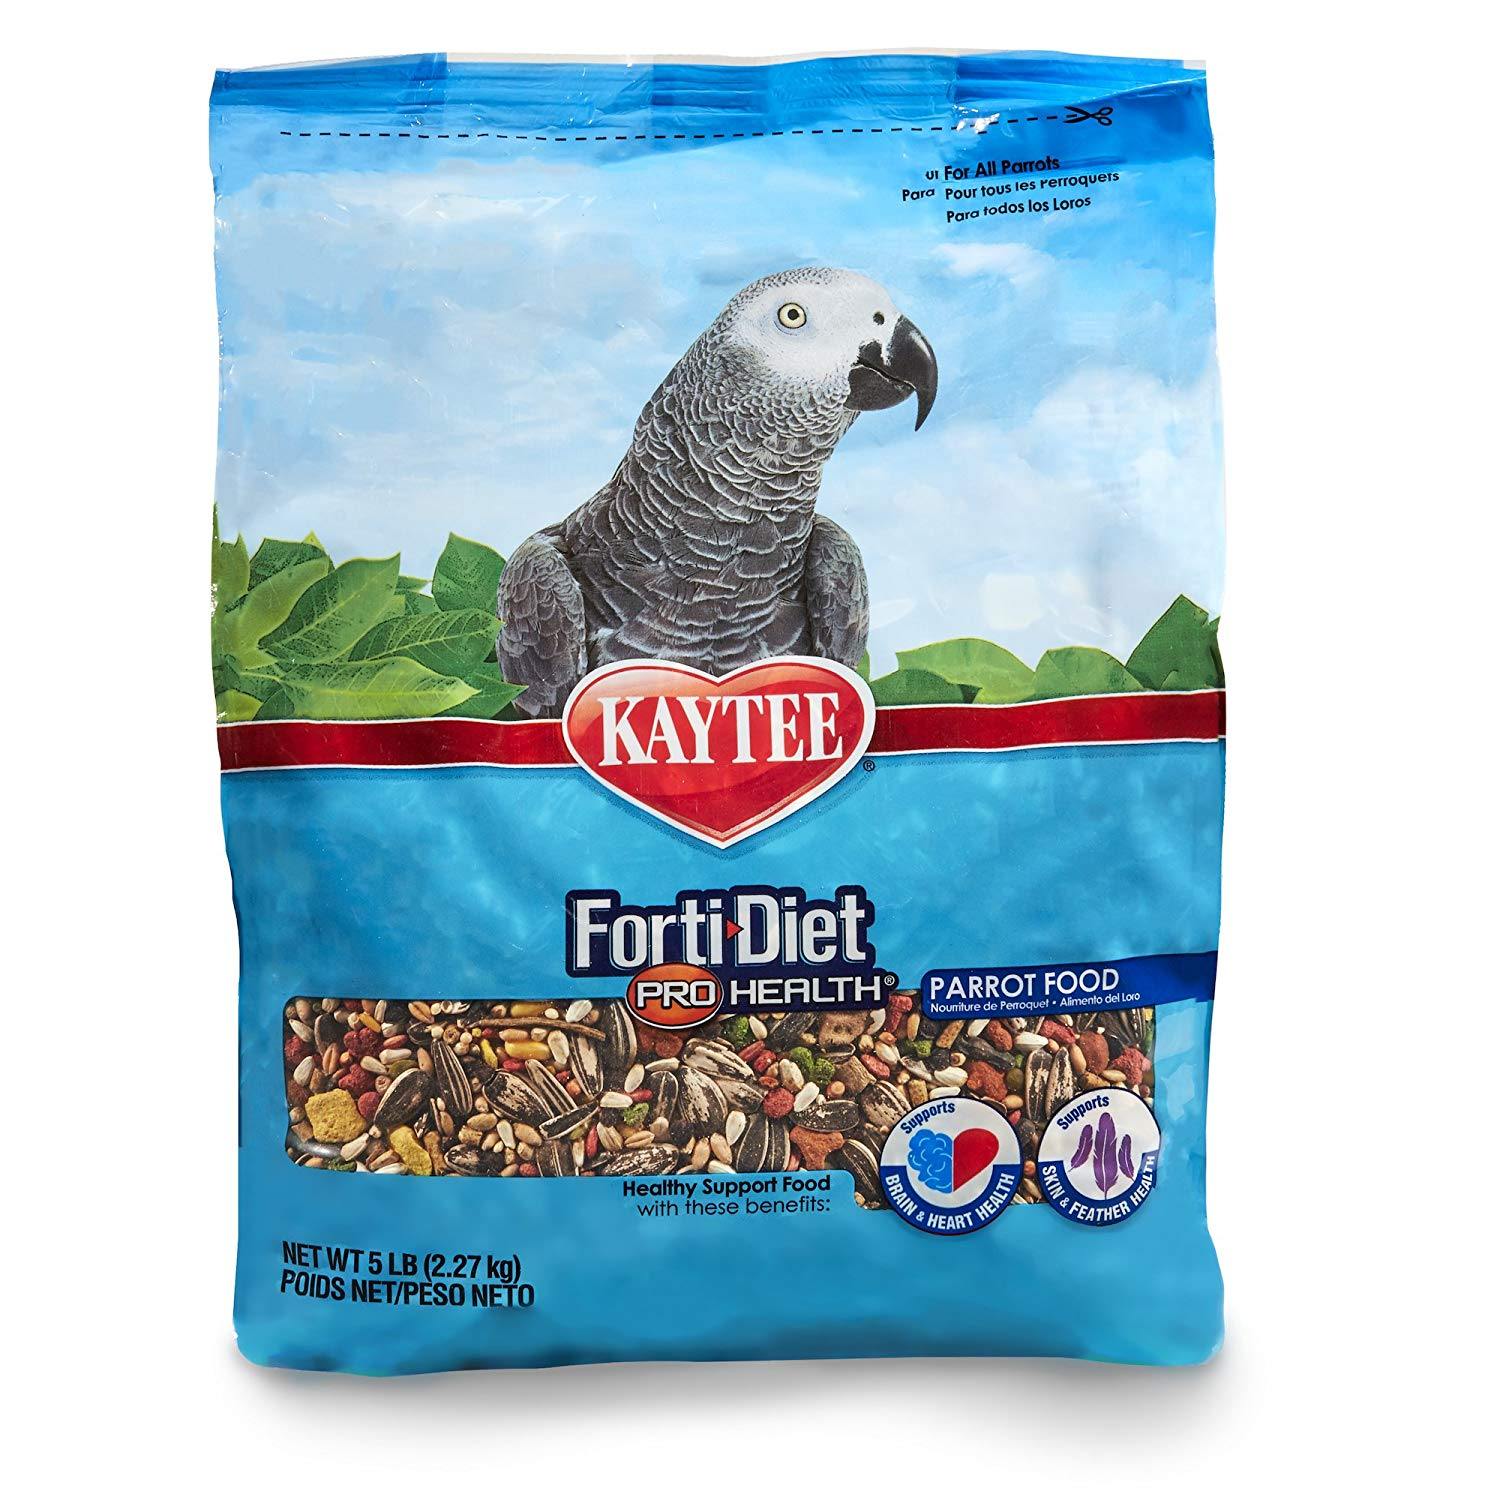 Kaytee Forti Diet Pro Health Parrot Food - 2 kg Bird Food